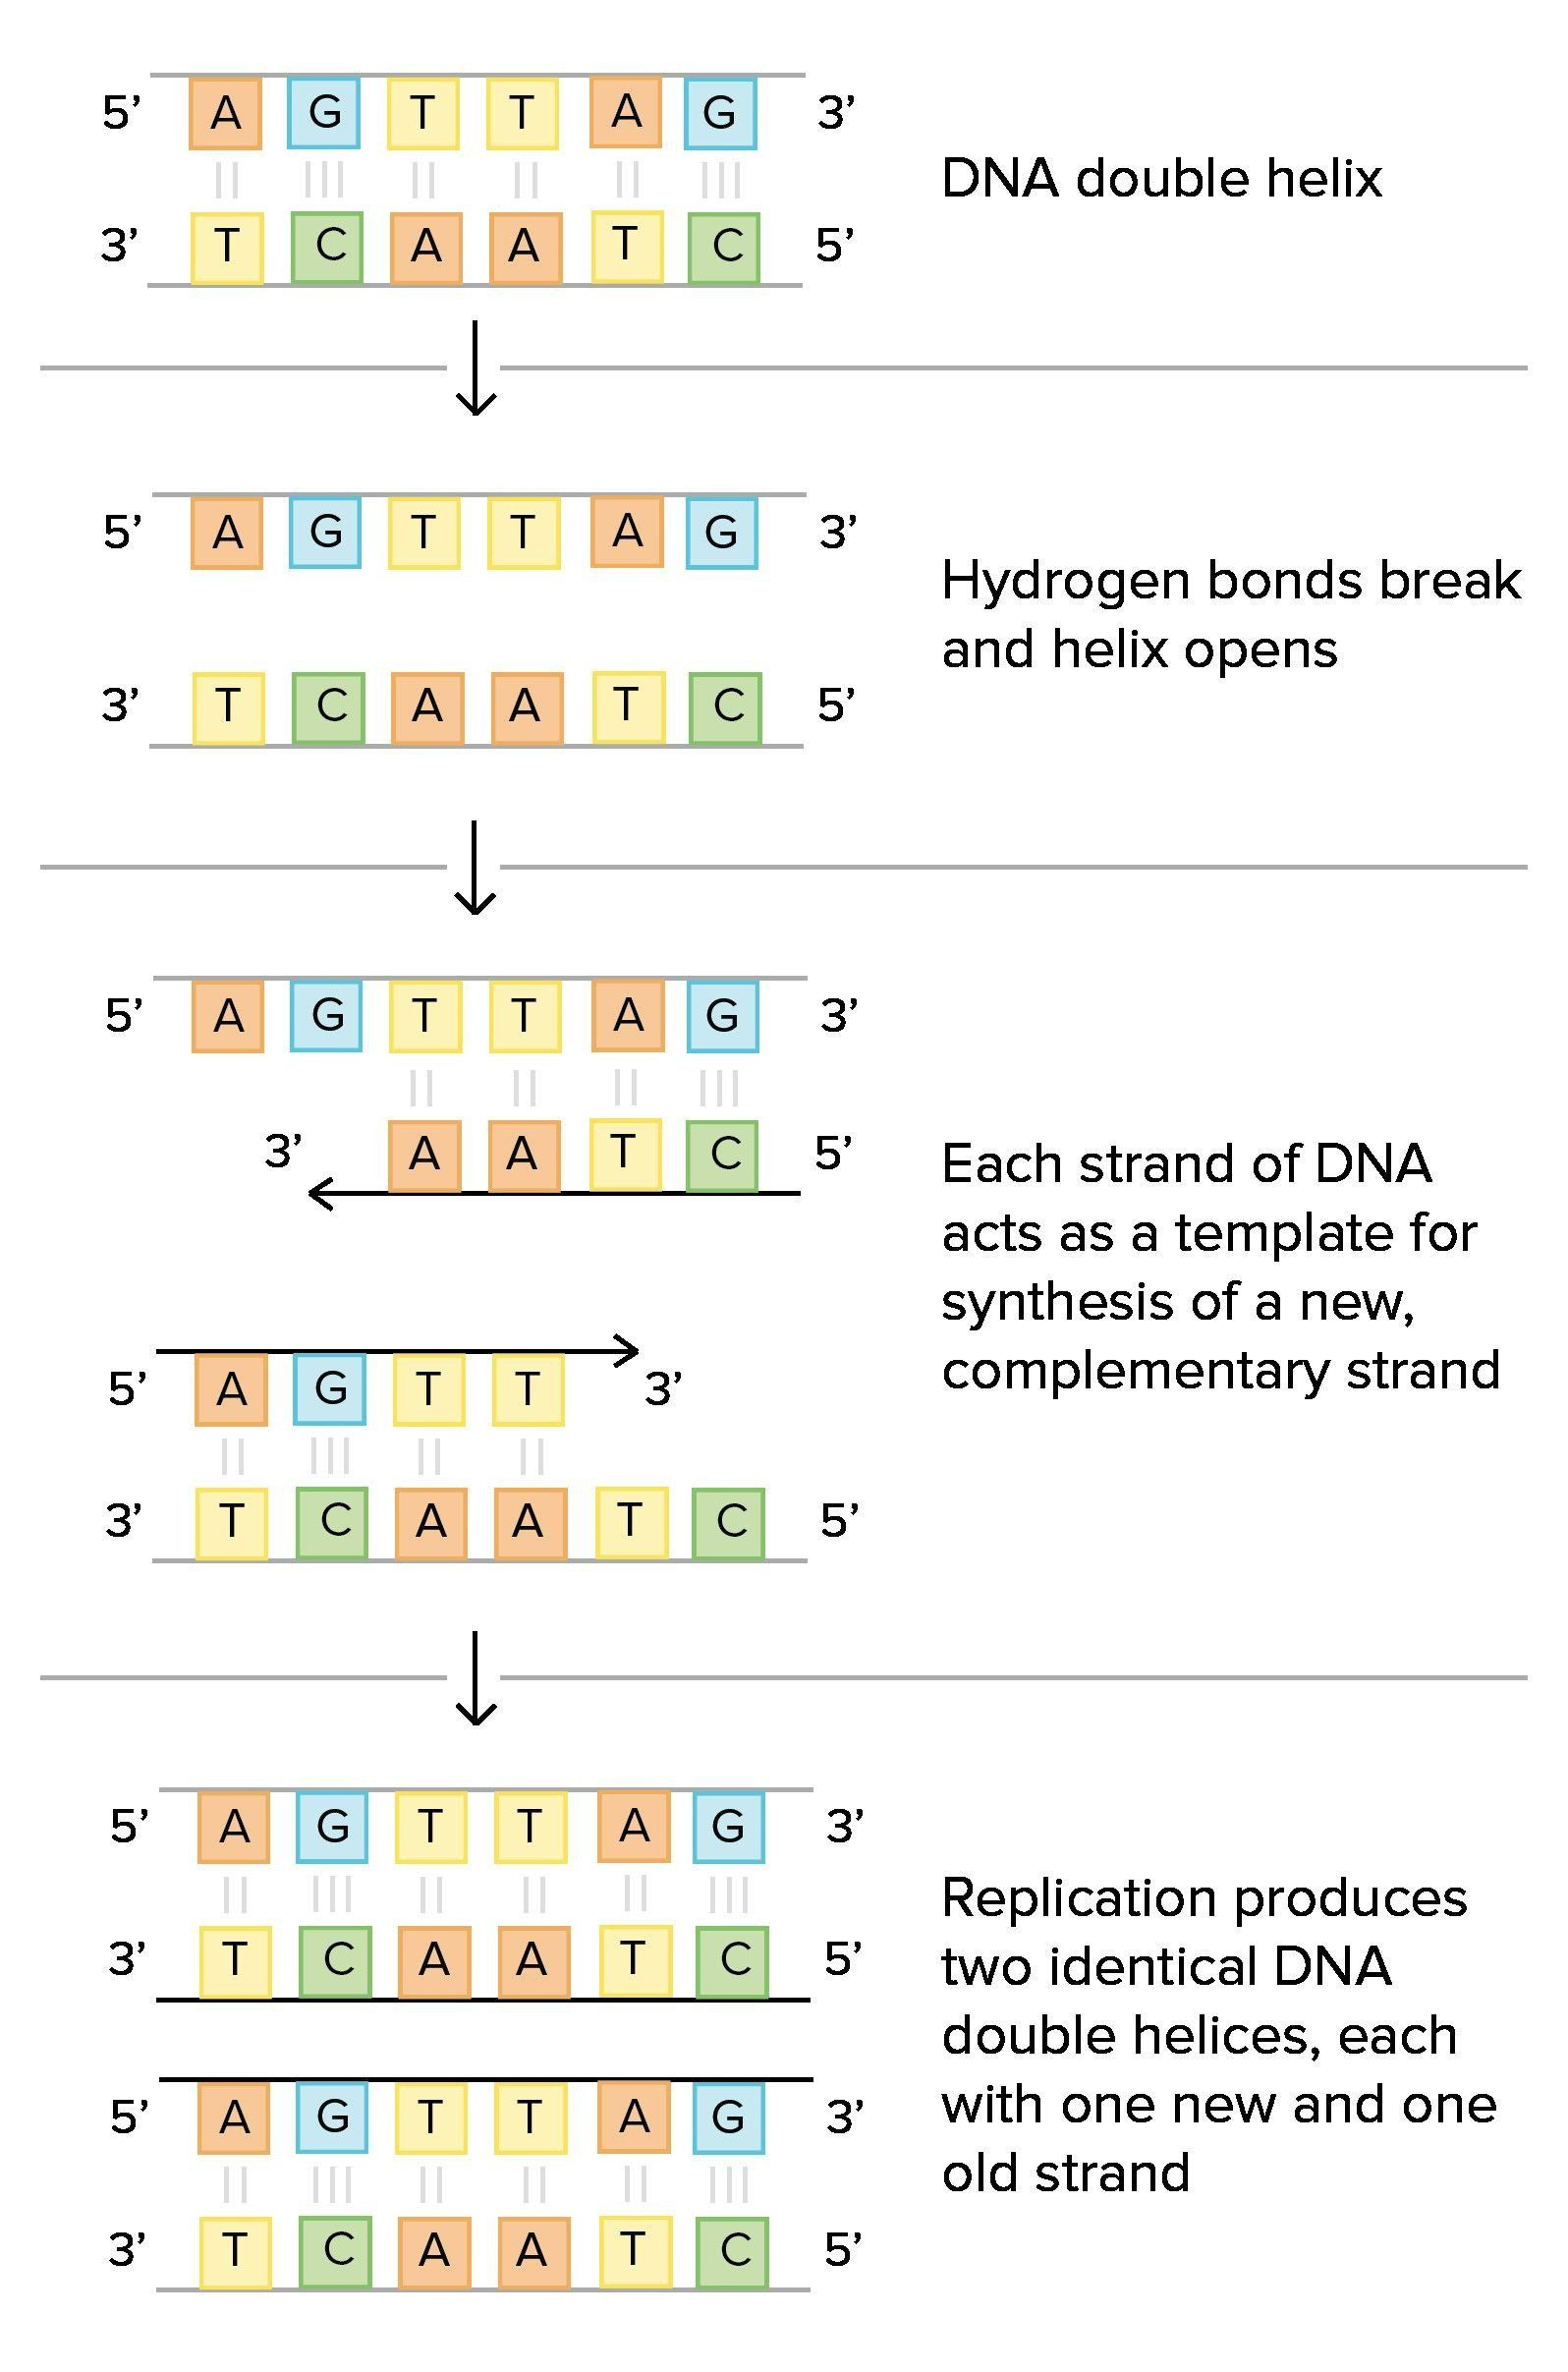 Dna Transcription And Translation Worksheet Ficial Dna Structure And Replicat In 2020 Dna Transcription And Translation Transcription And Translation Dna Transcription